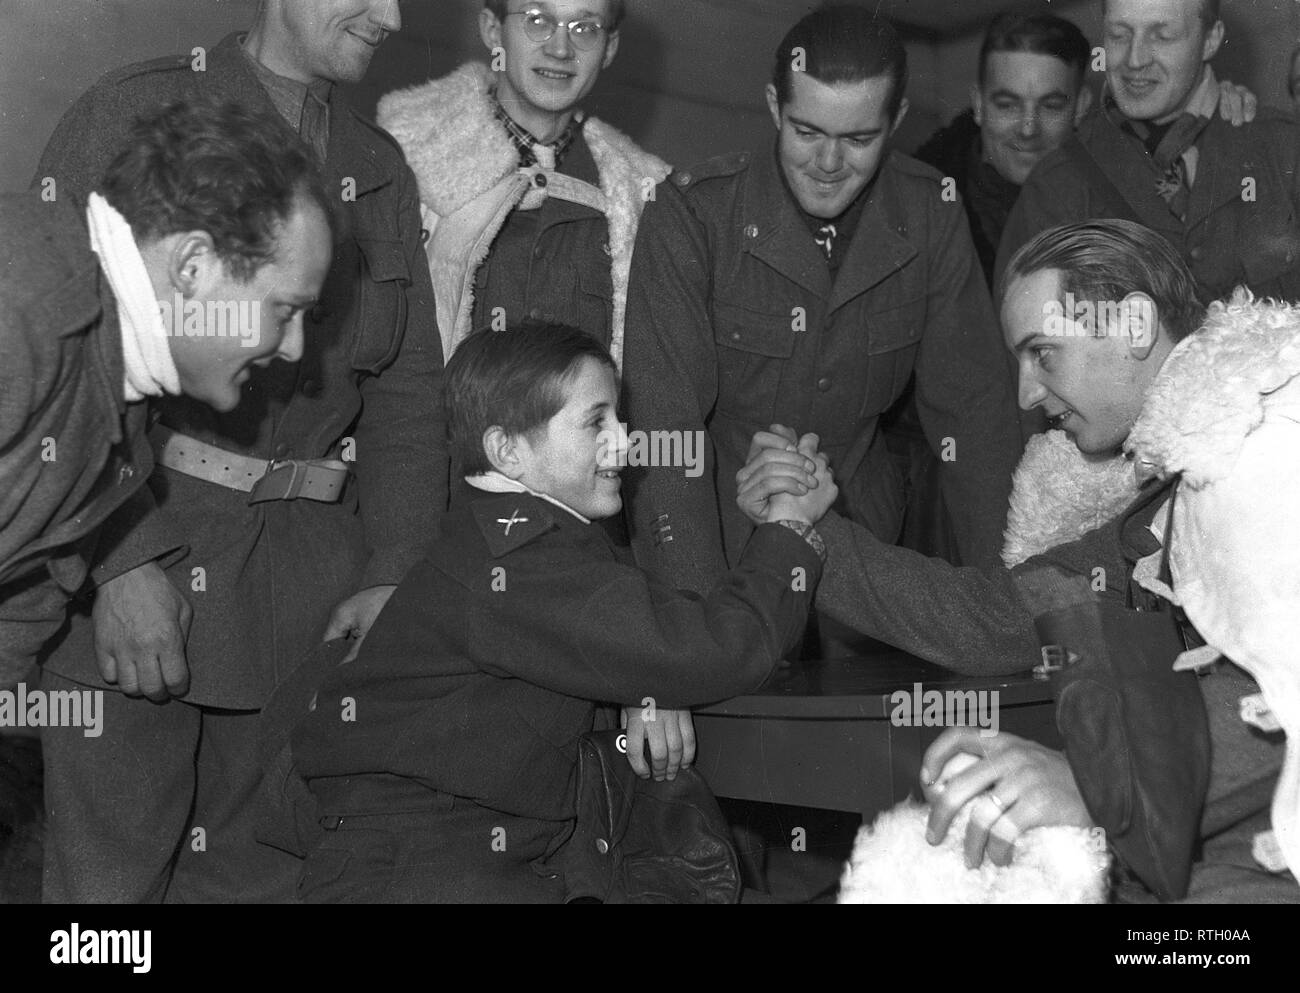 The Winter War. A military conflict between the Soviet union and Finland. It began with a Soviet invasion on november 1939 when Soviet infantery crossed the border on the Karelian Isthmus. About 9500 Swedish volunteer soldiers participated in the war.  Pictured Swedish volunteer soldiers. Nils Knutsson from Stockholm is having an arm-wrestling match with the young Finnish orderly boy Olavi Kukkola. Standing behind them Mårten Elgström who acts as the referee.   January 1940. Photo Kristoffersson ref 103-6. - Stock Image